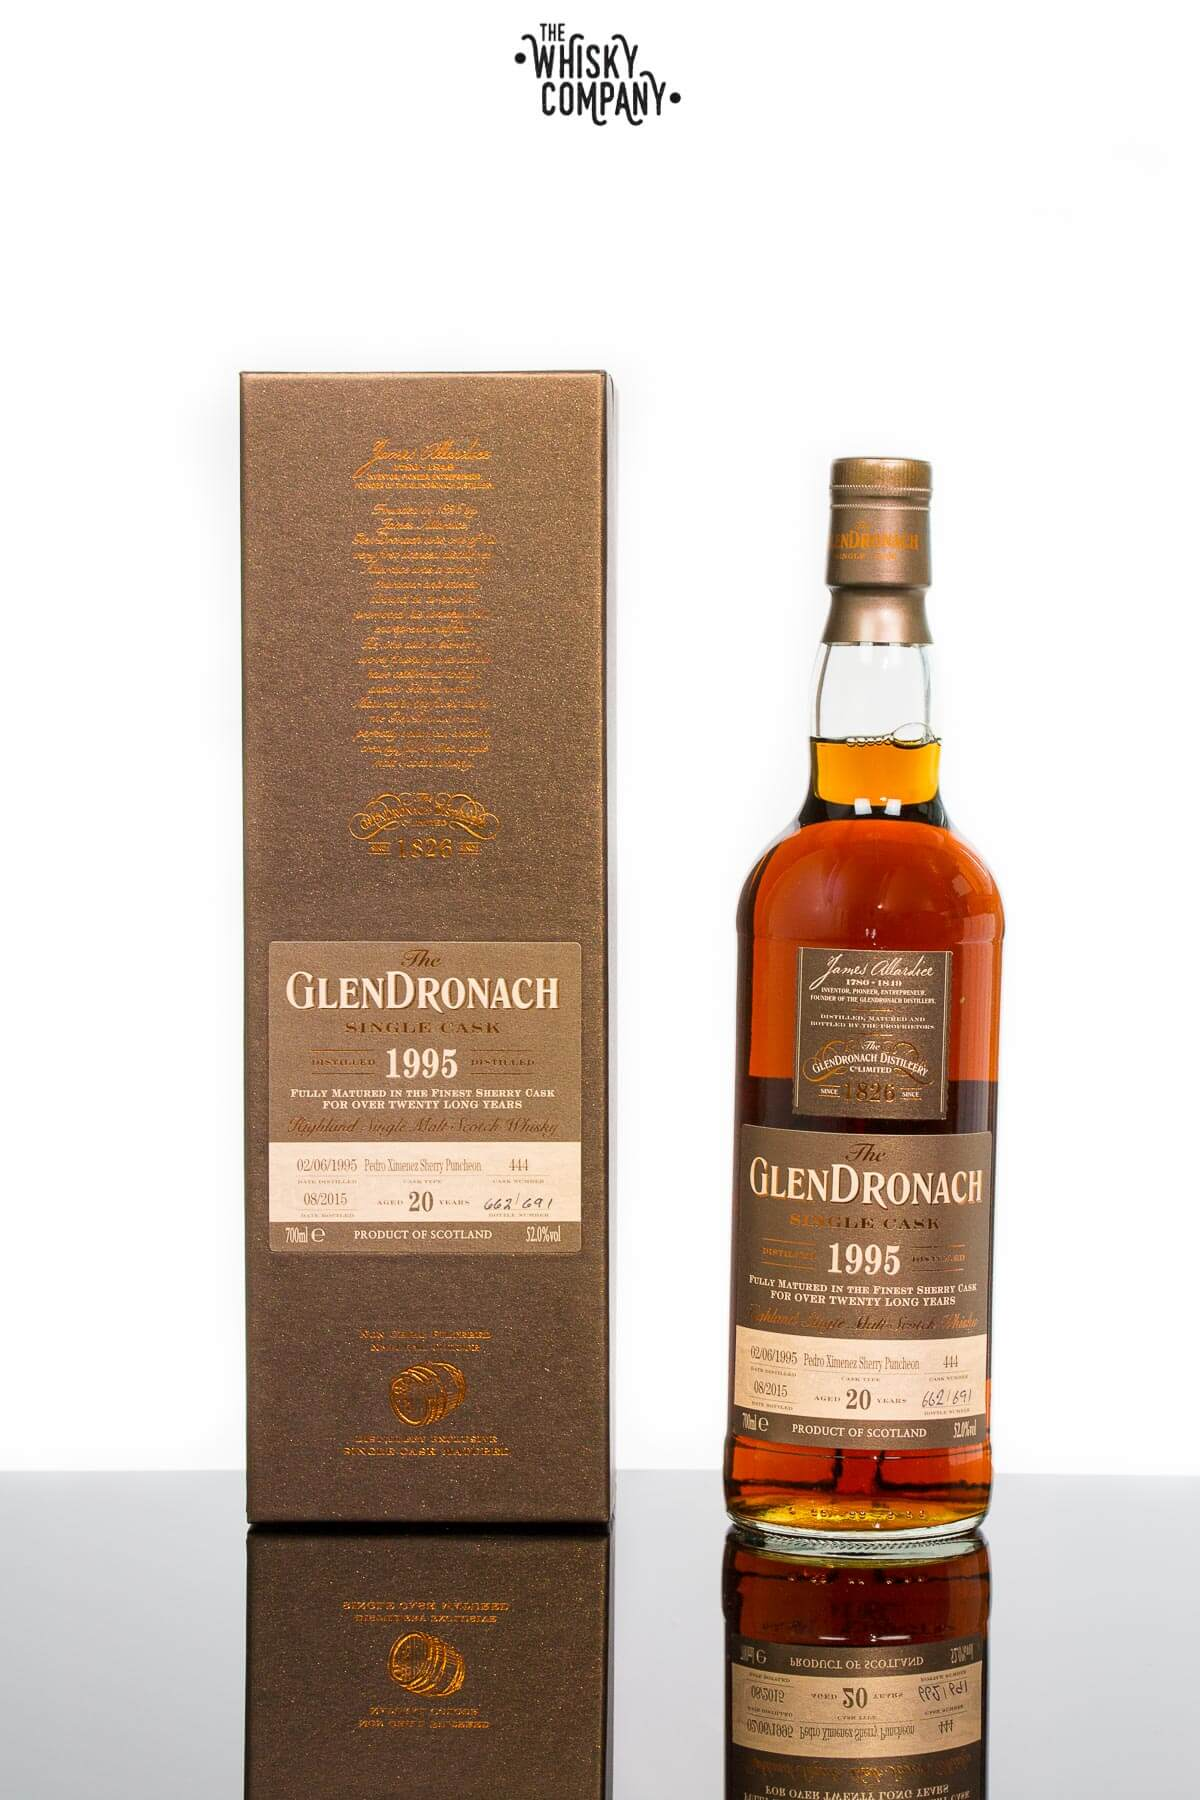 GlenDronach 1995 Single Cask Aged 20 Years #444 Highland Single Malt Scotch Whisky